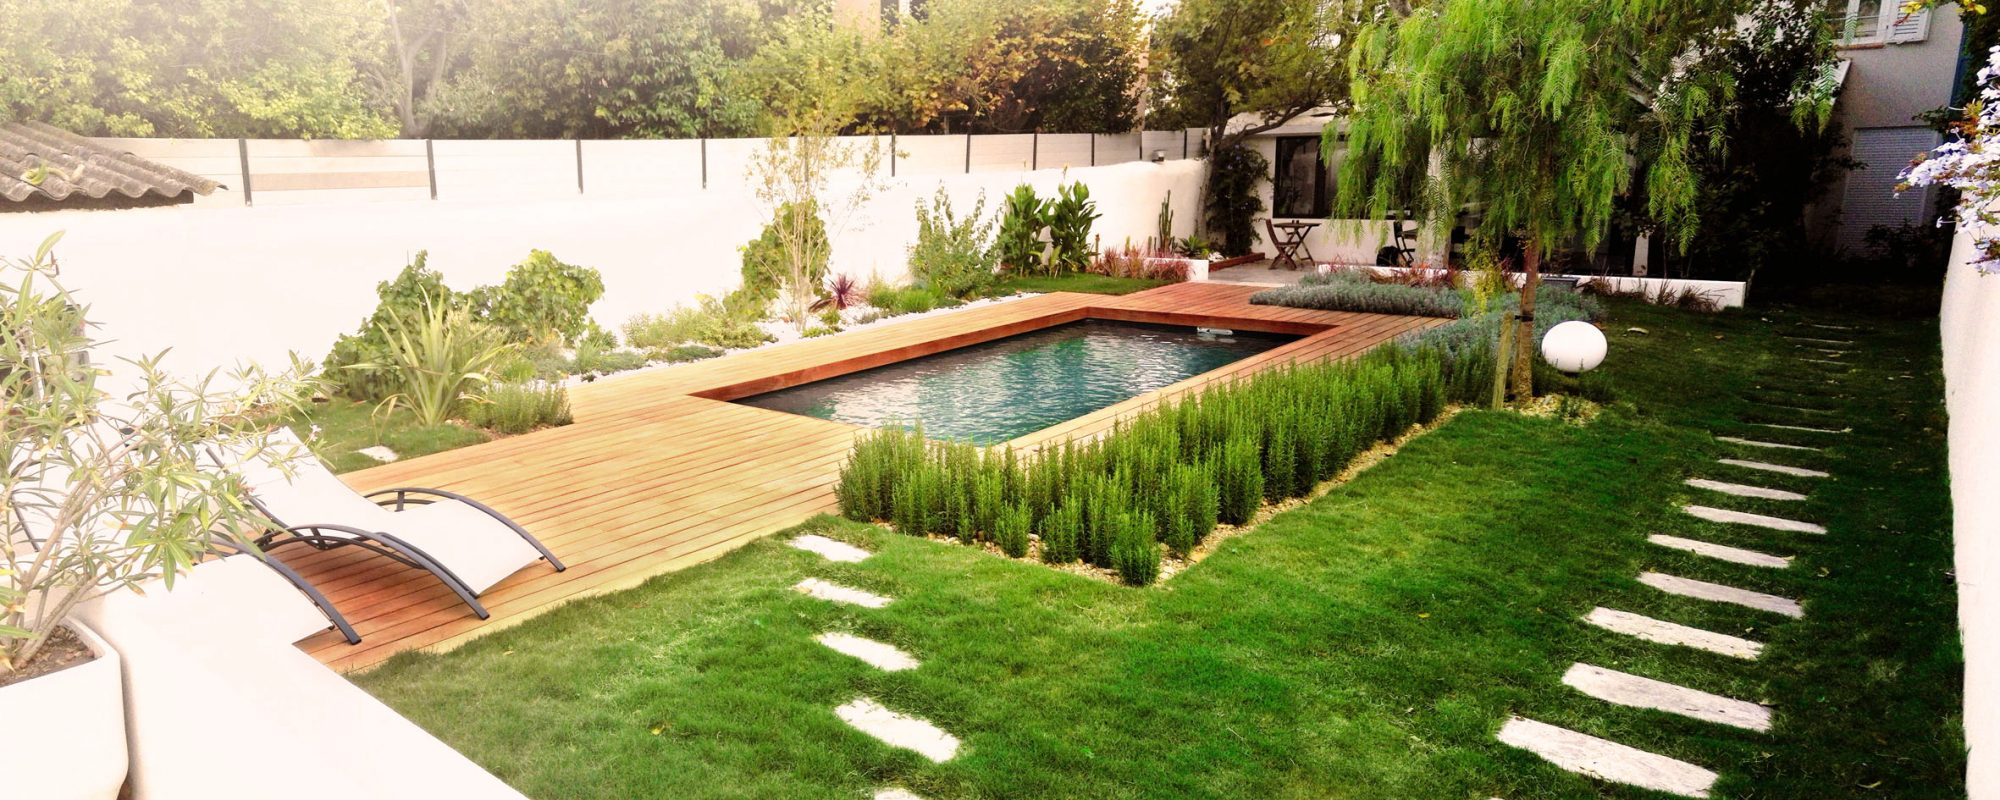 P pin paysages architecte paysagiste architecte for Style de jardin paysagiste